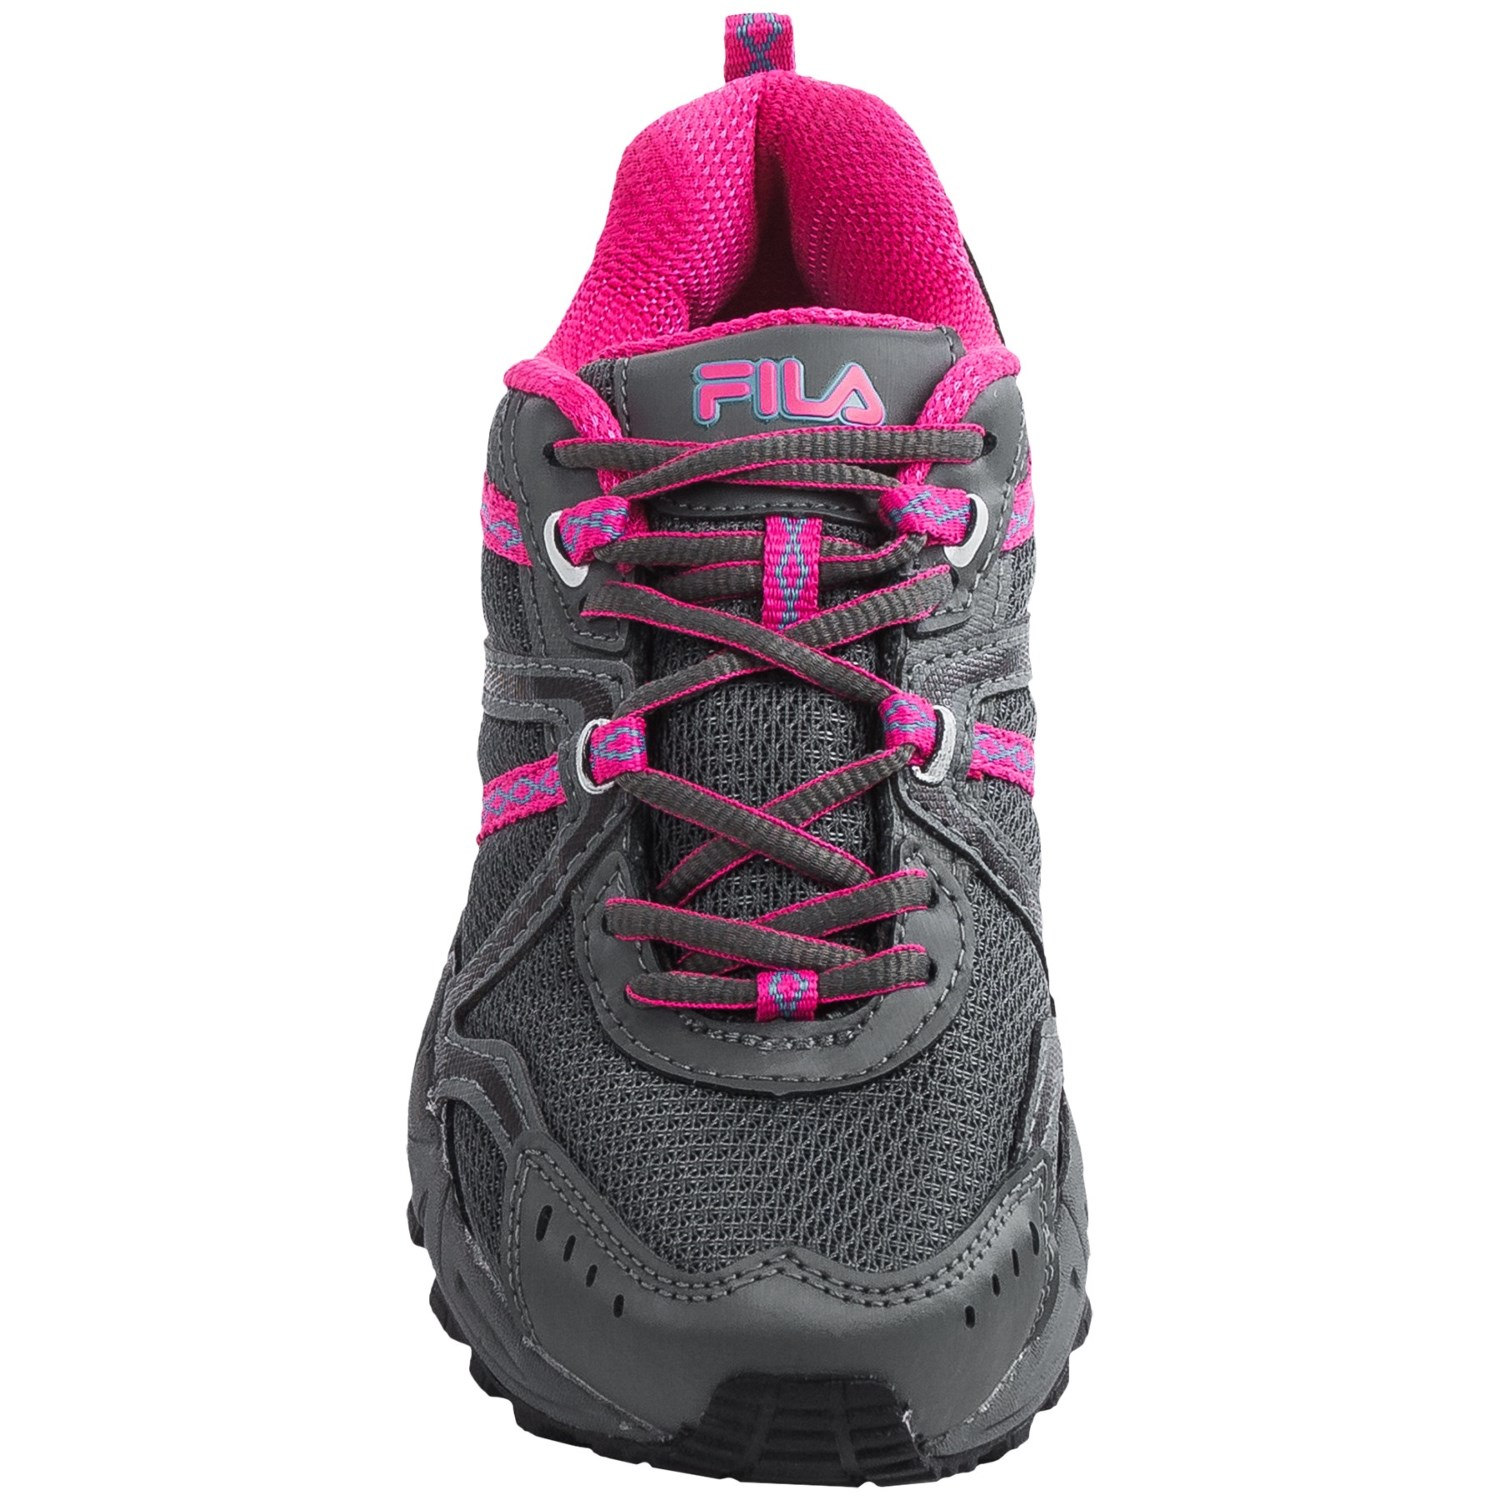 Fila Trail Shoes Women